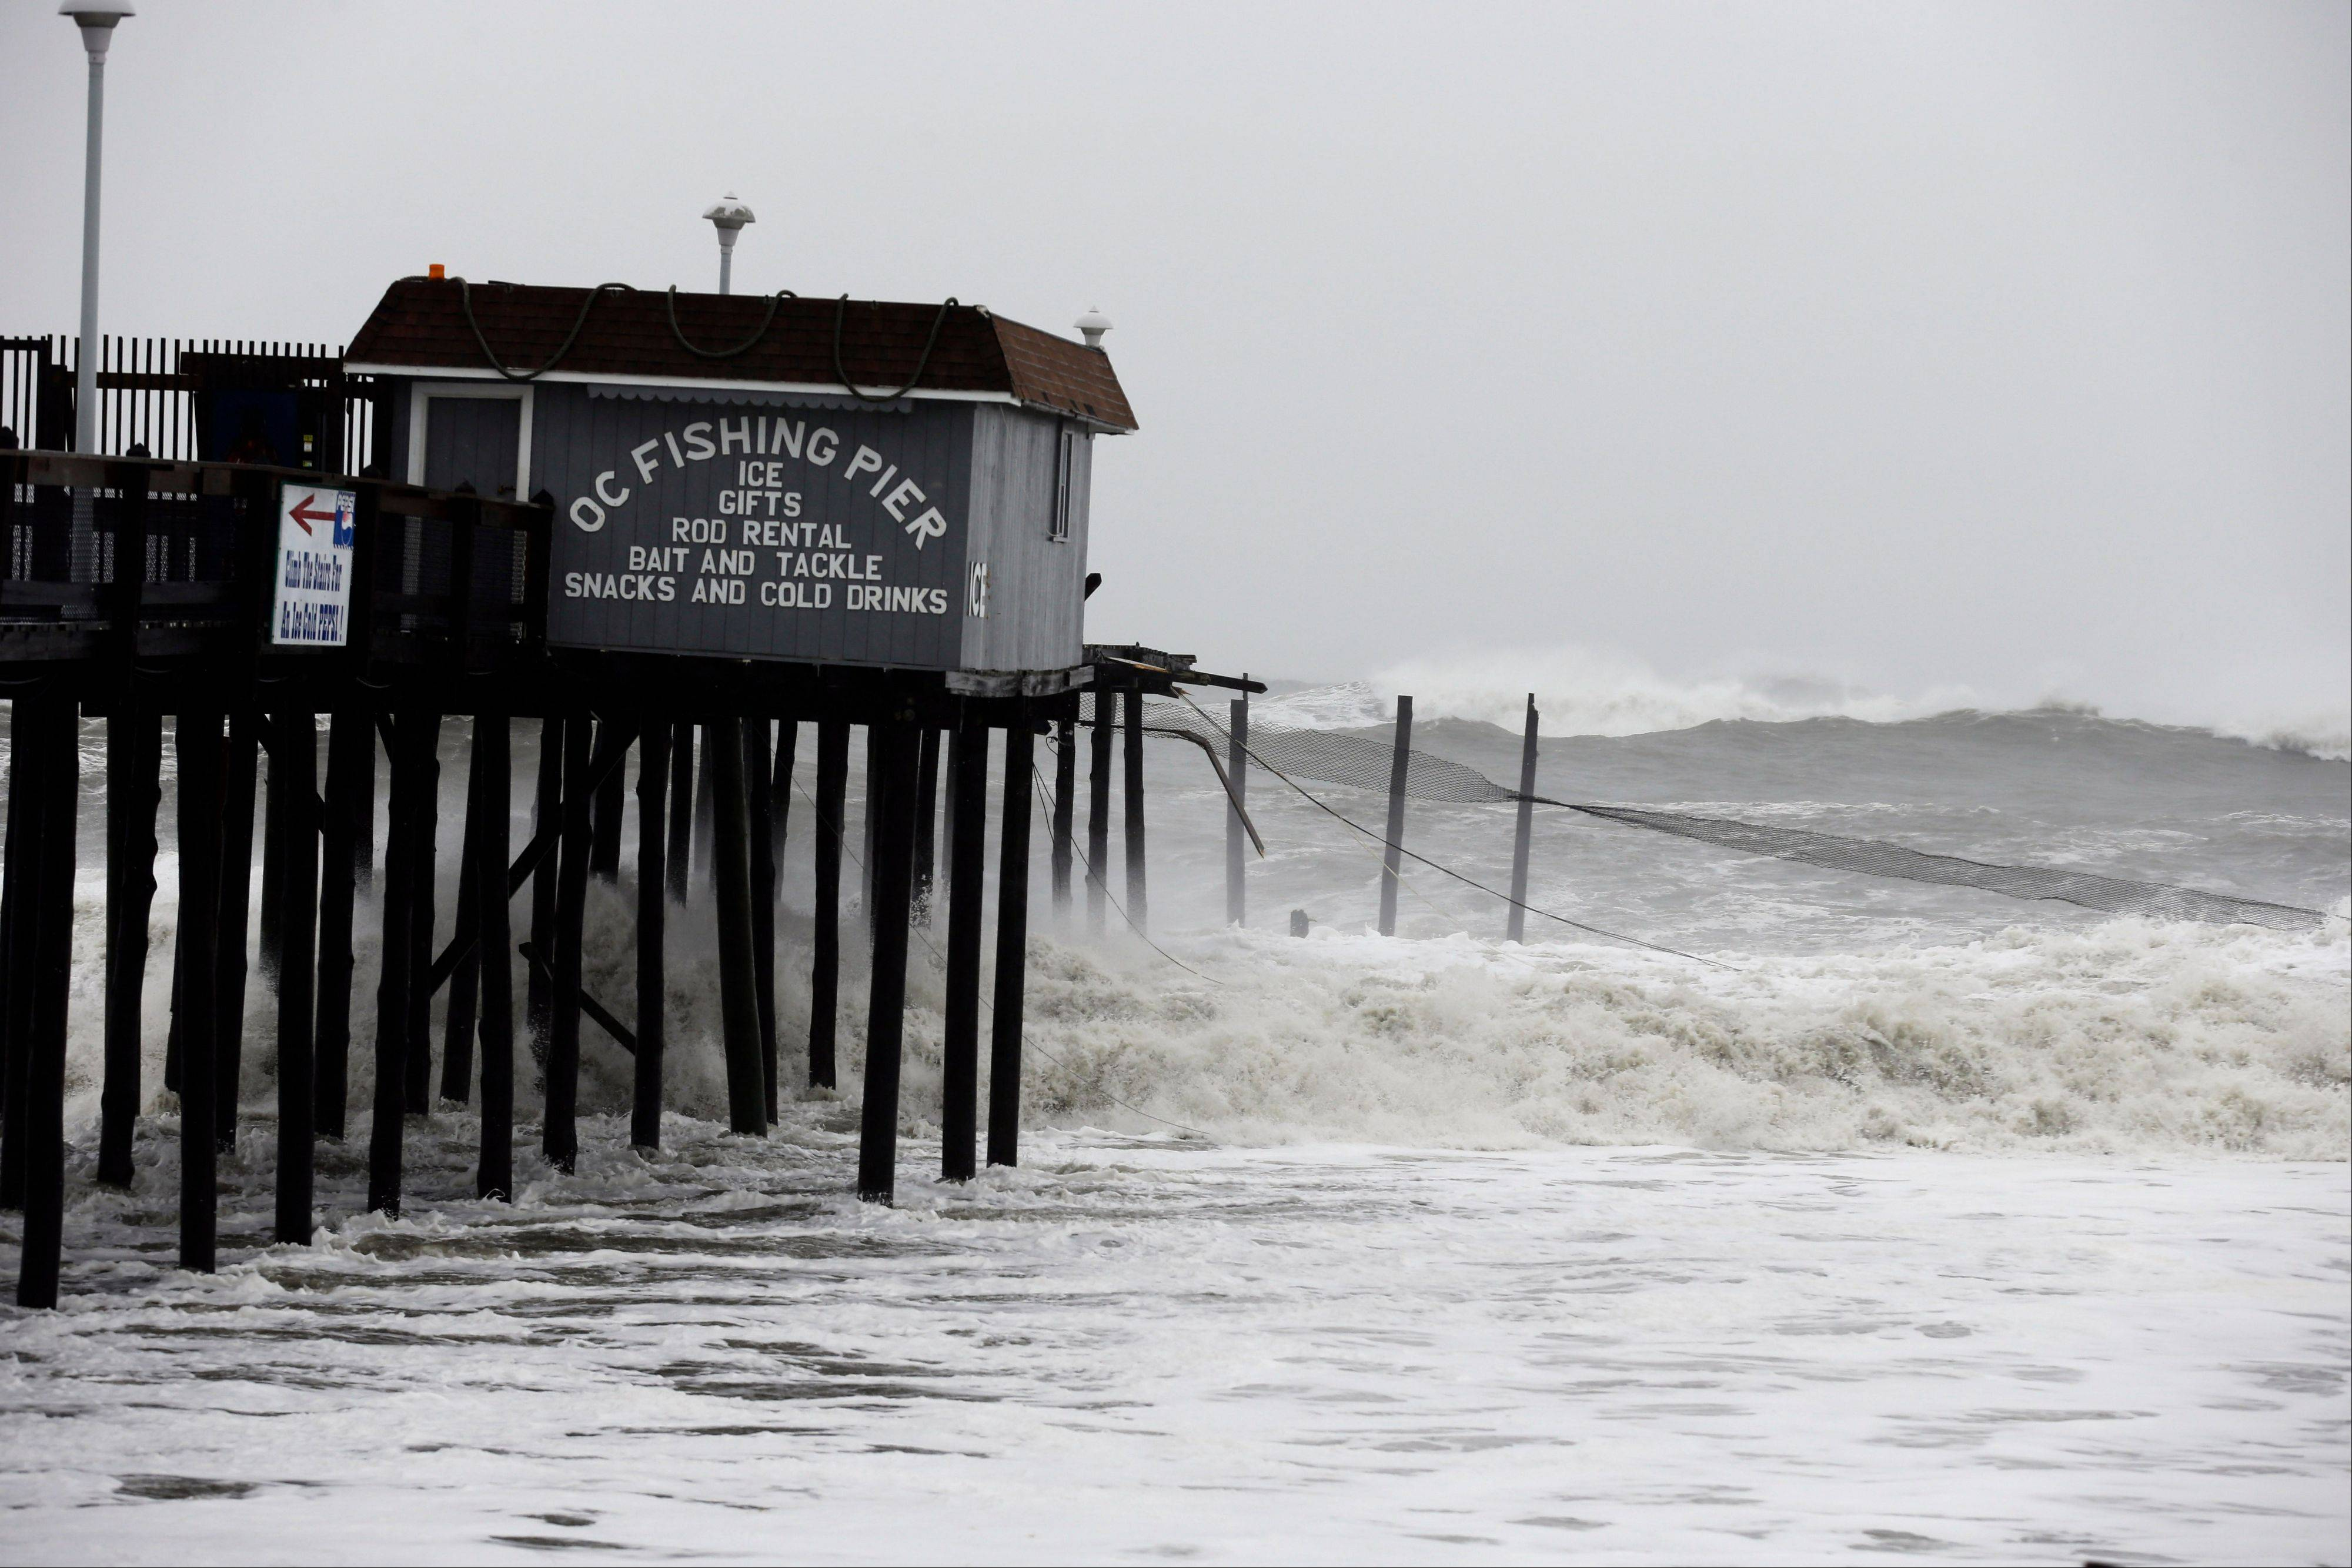 Part of the fishing pier in Ocean City, Md., is ripped away during Hurricane Sandy's assault on the East Coast.